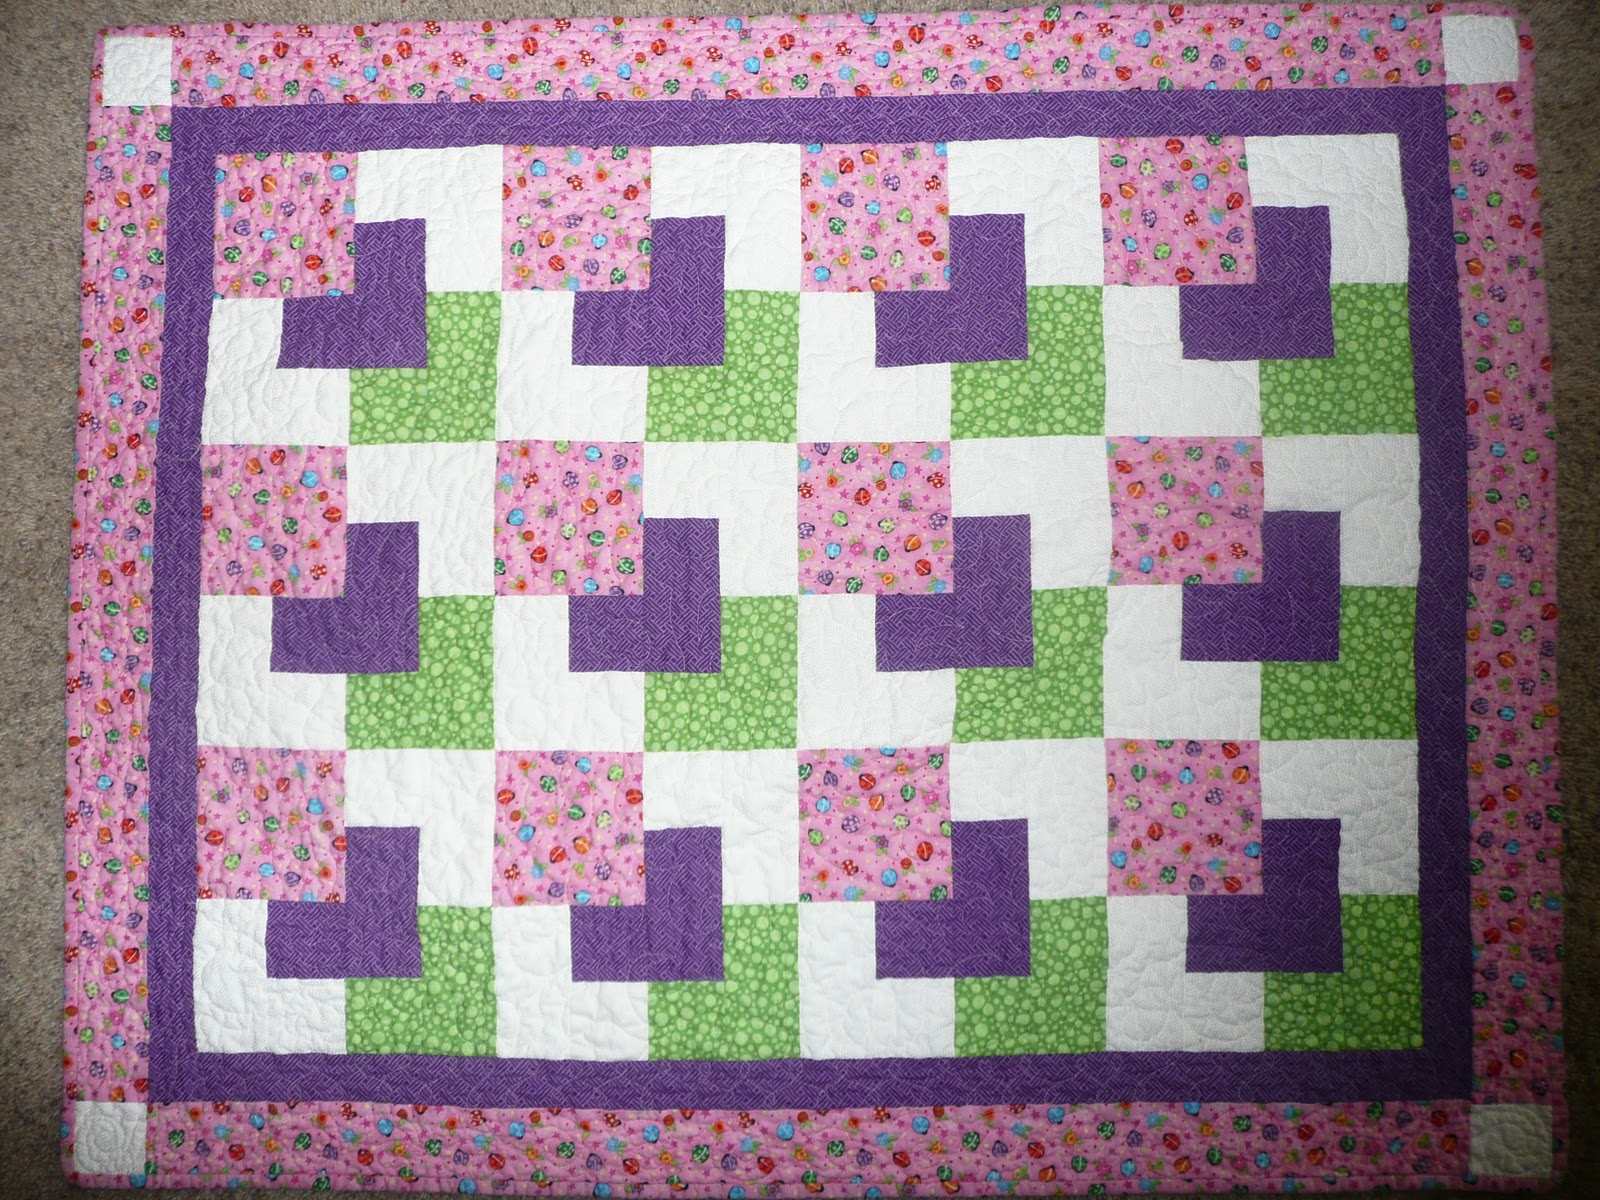 Easy Quilt Patterns For Baby : Here are simple Free Printable Quilt Patterns For Baby In A Few Hours